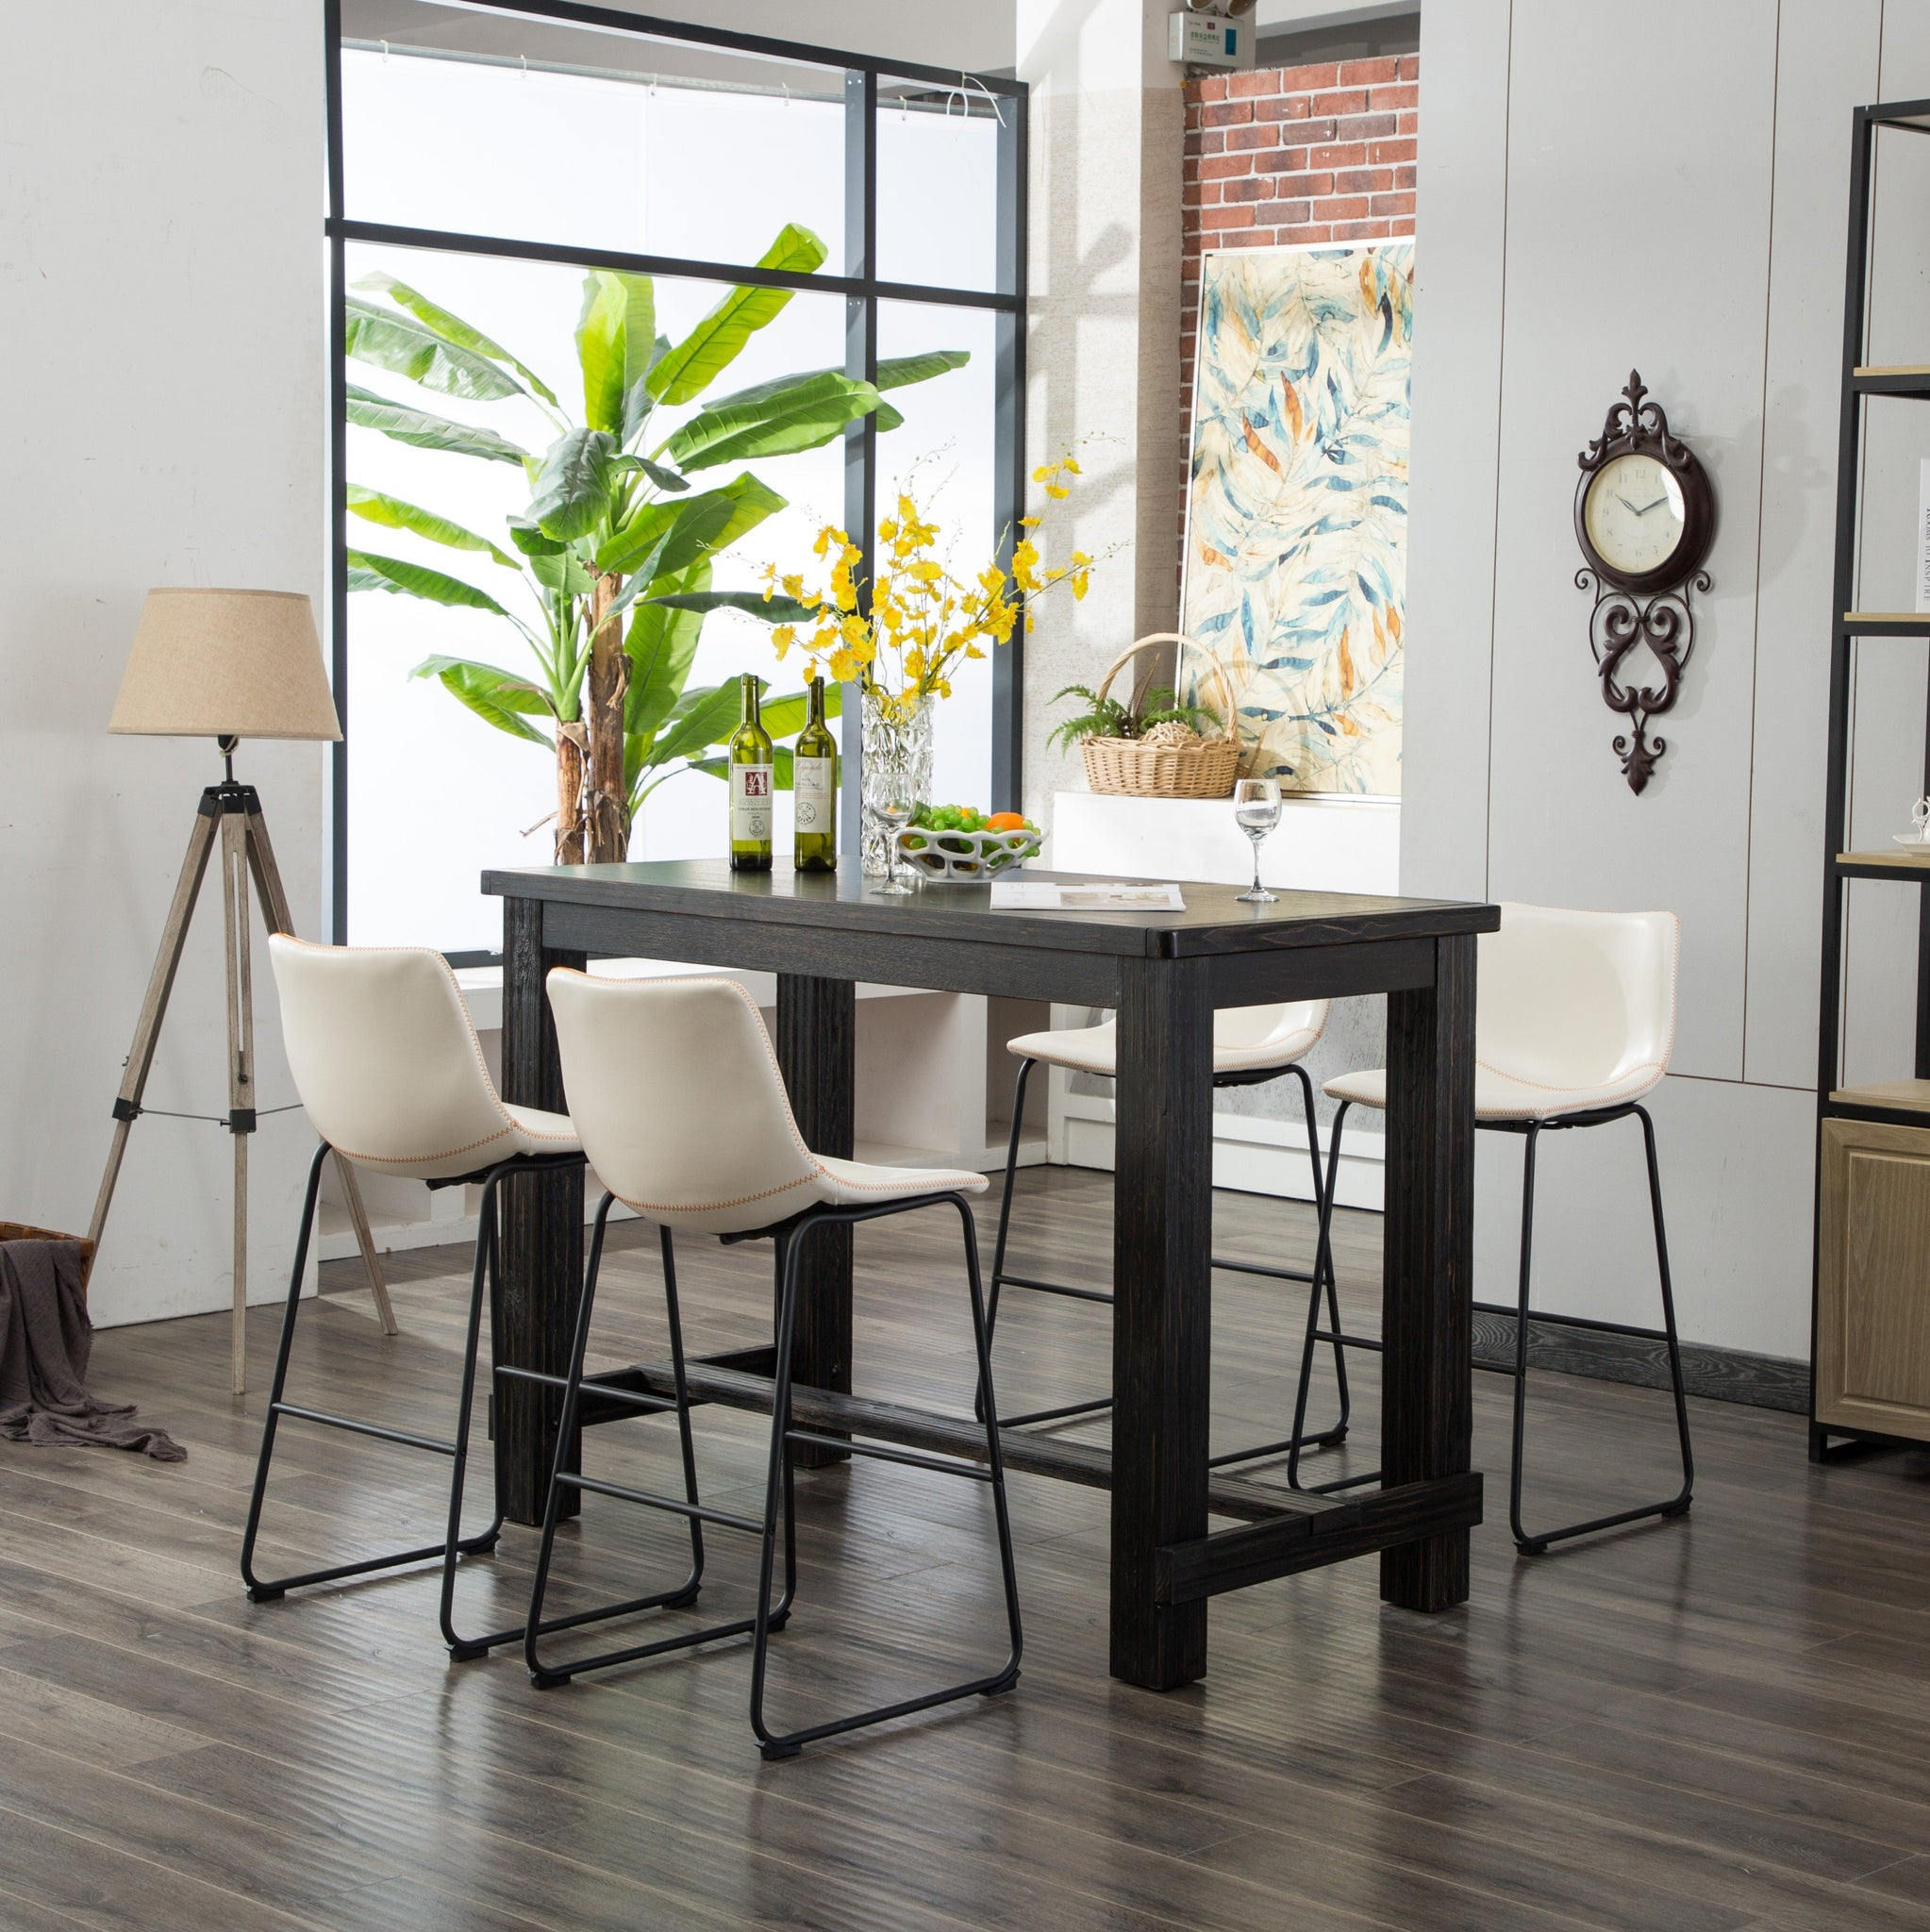 Bronco Antique Wood Finished Bar Dining Set: Table and Four Barstools, White